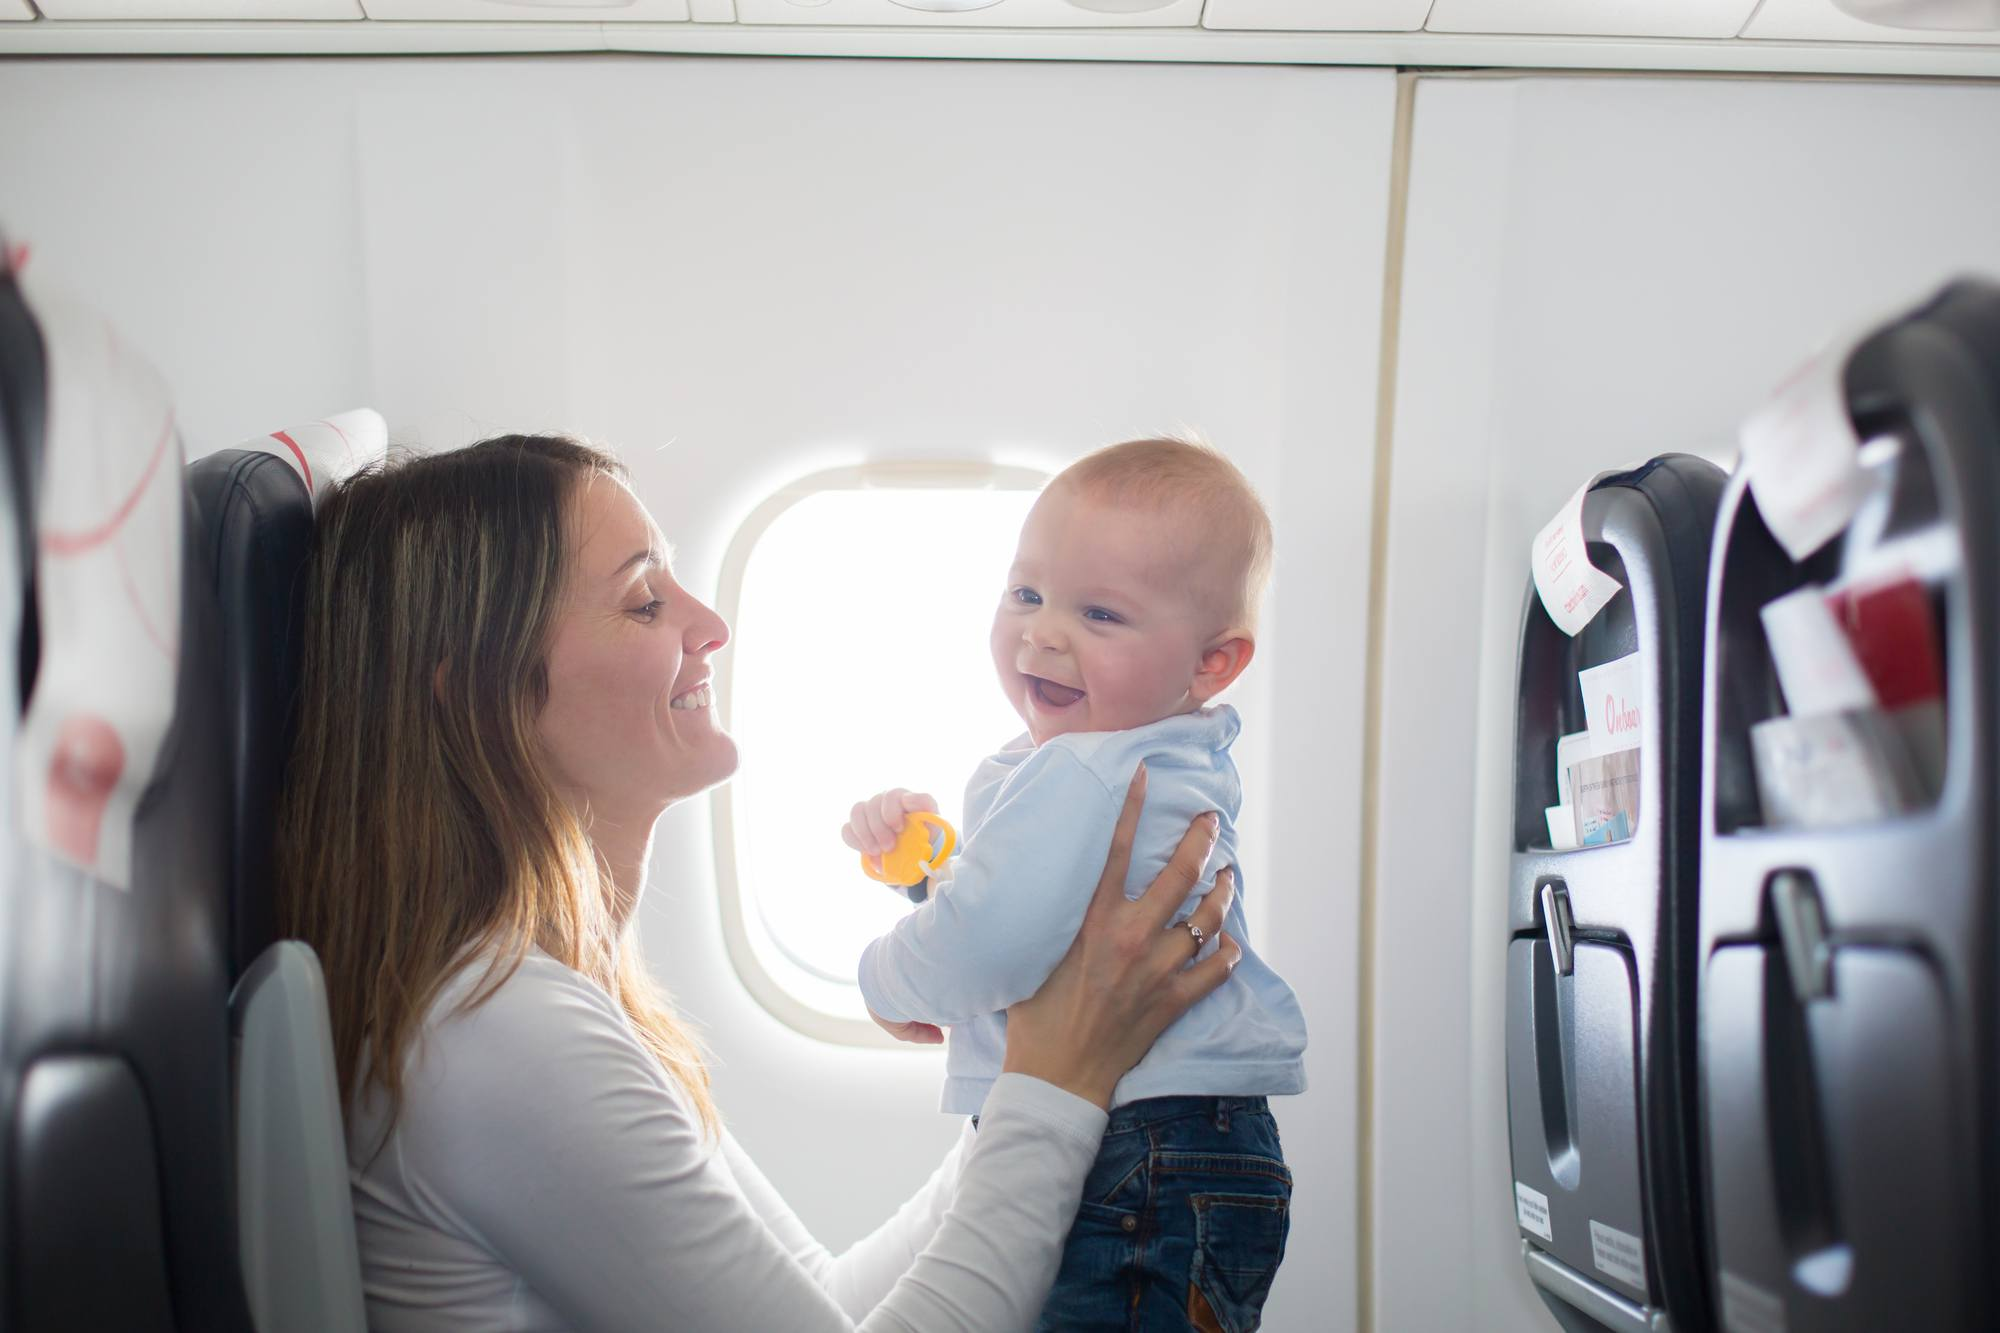 All you need to remember when travelling with an infant